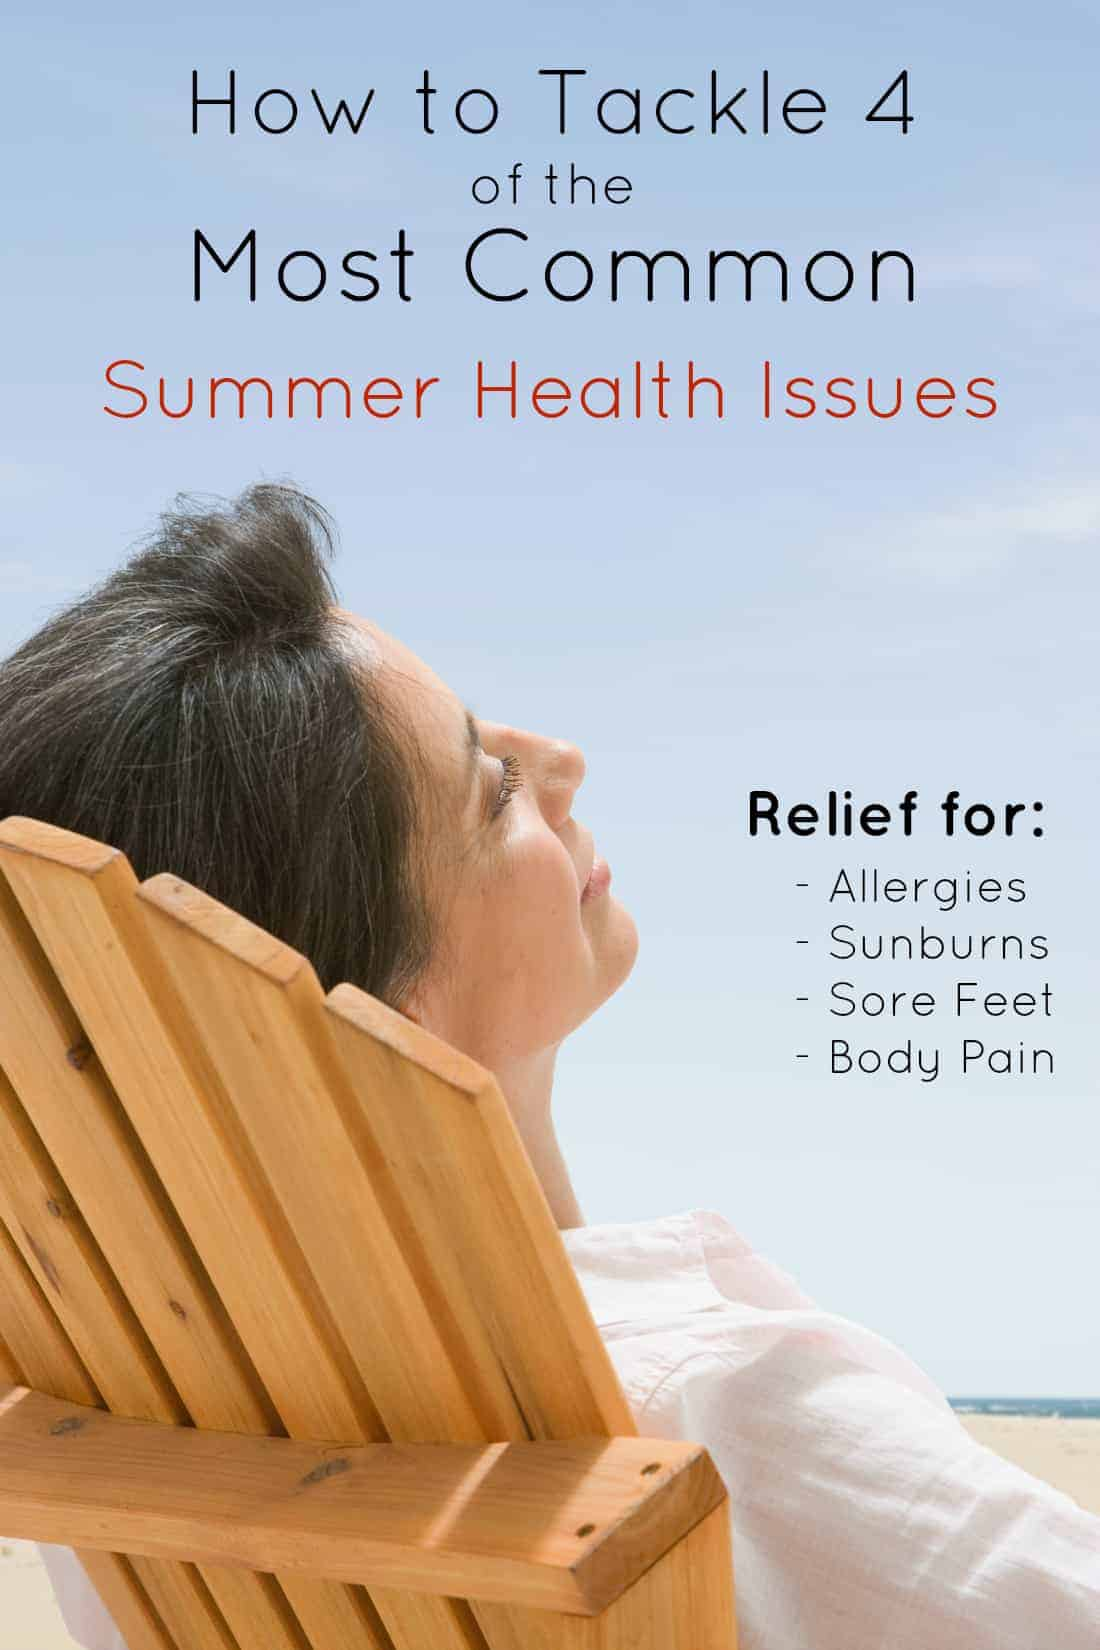 Tackle the 4 Most Common Summer Health Issues